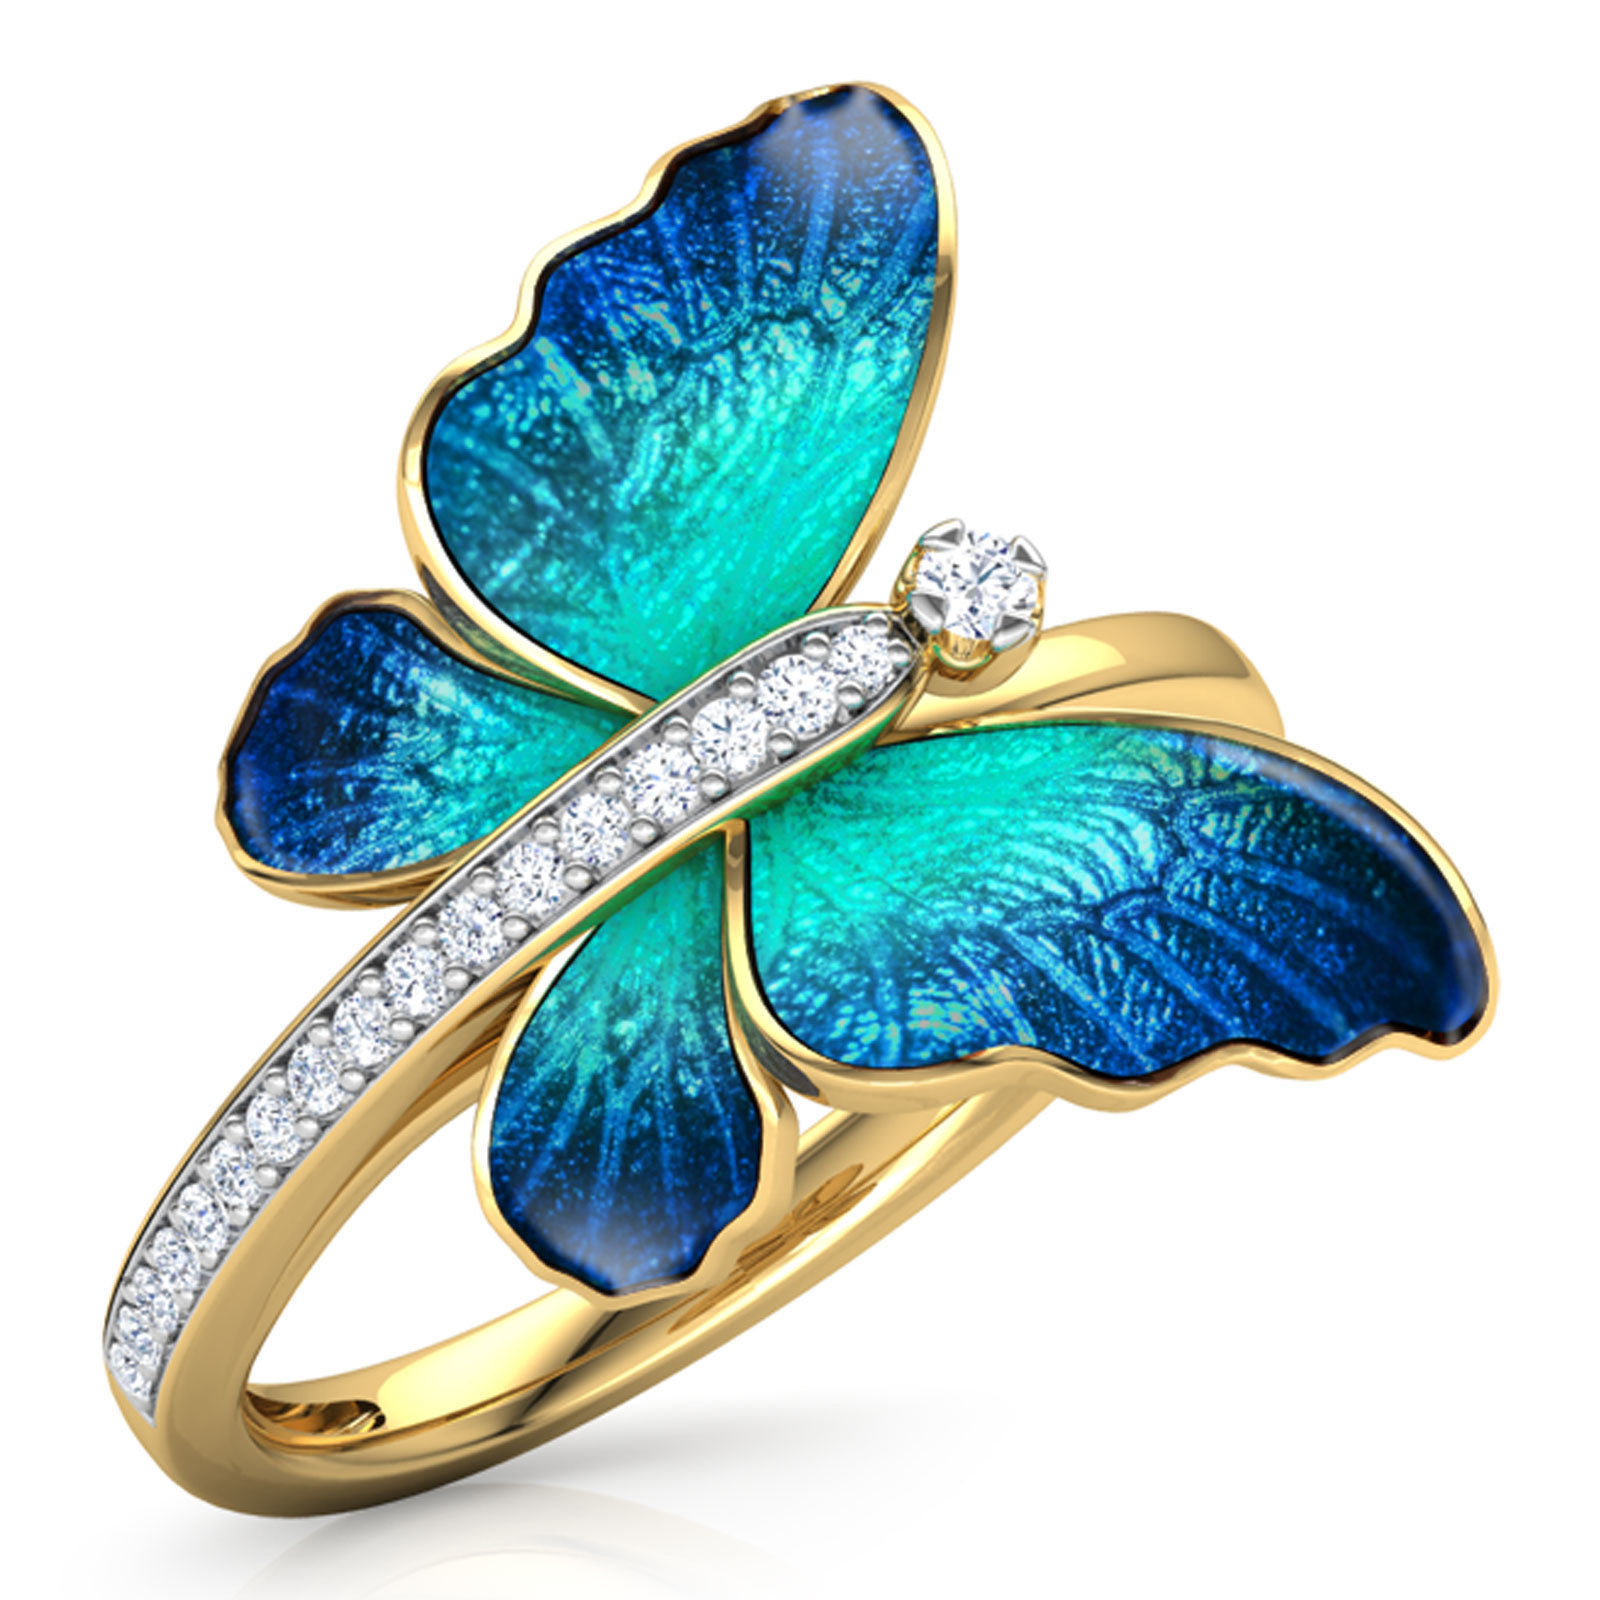 Butterfly Ring 2 with Texture